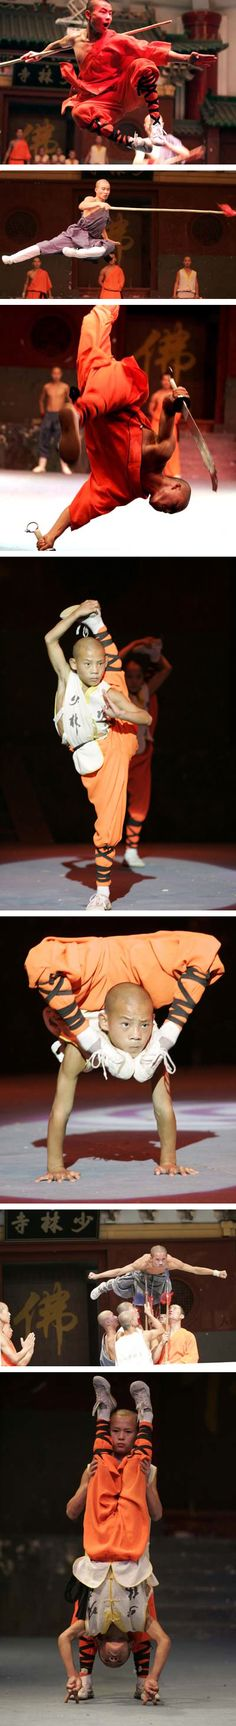 ♂ Performance of Shaolin Kungfu stages in Zhengzhou from http://english.peopledaily.com.cn/200409/16/eng20040916_157209.html